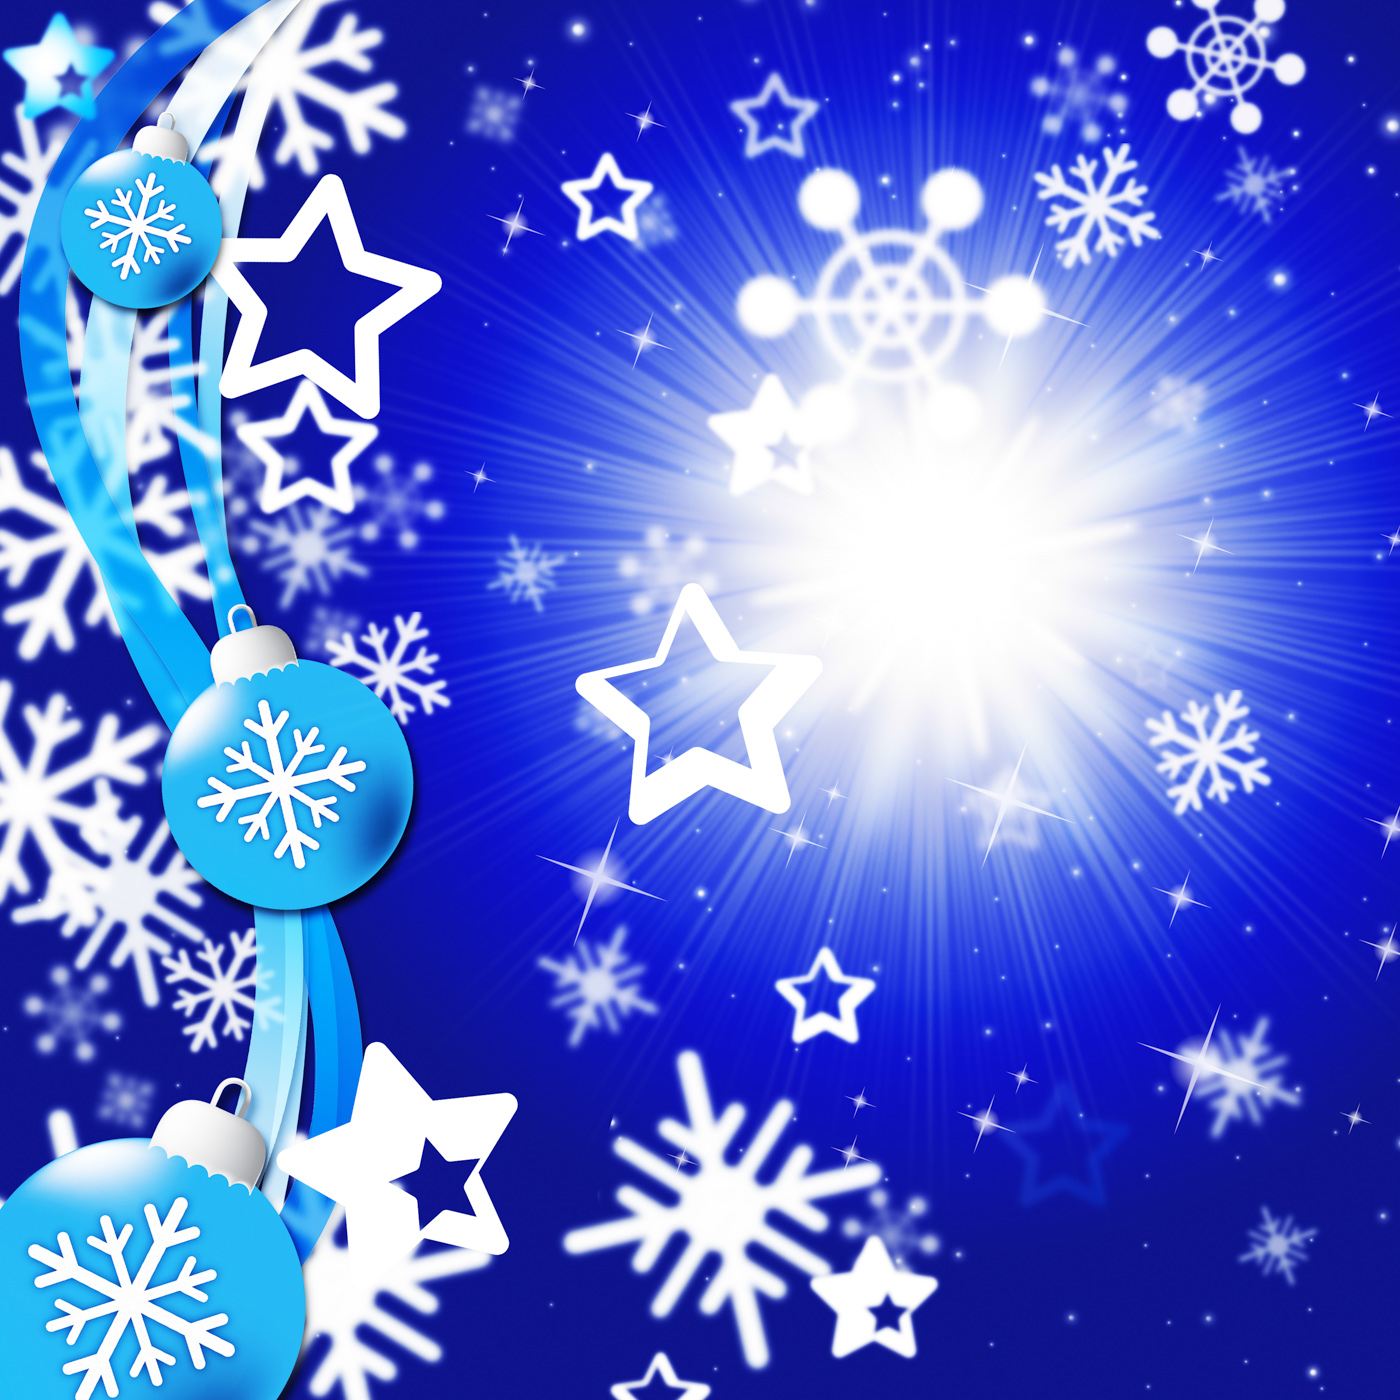 Blue Snowflakes Background Shows Bright Sun And Snowing, Wintery, Shining, Winter, Sun, HQ Photo